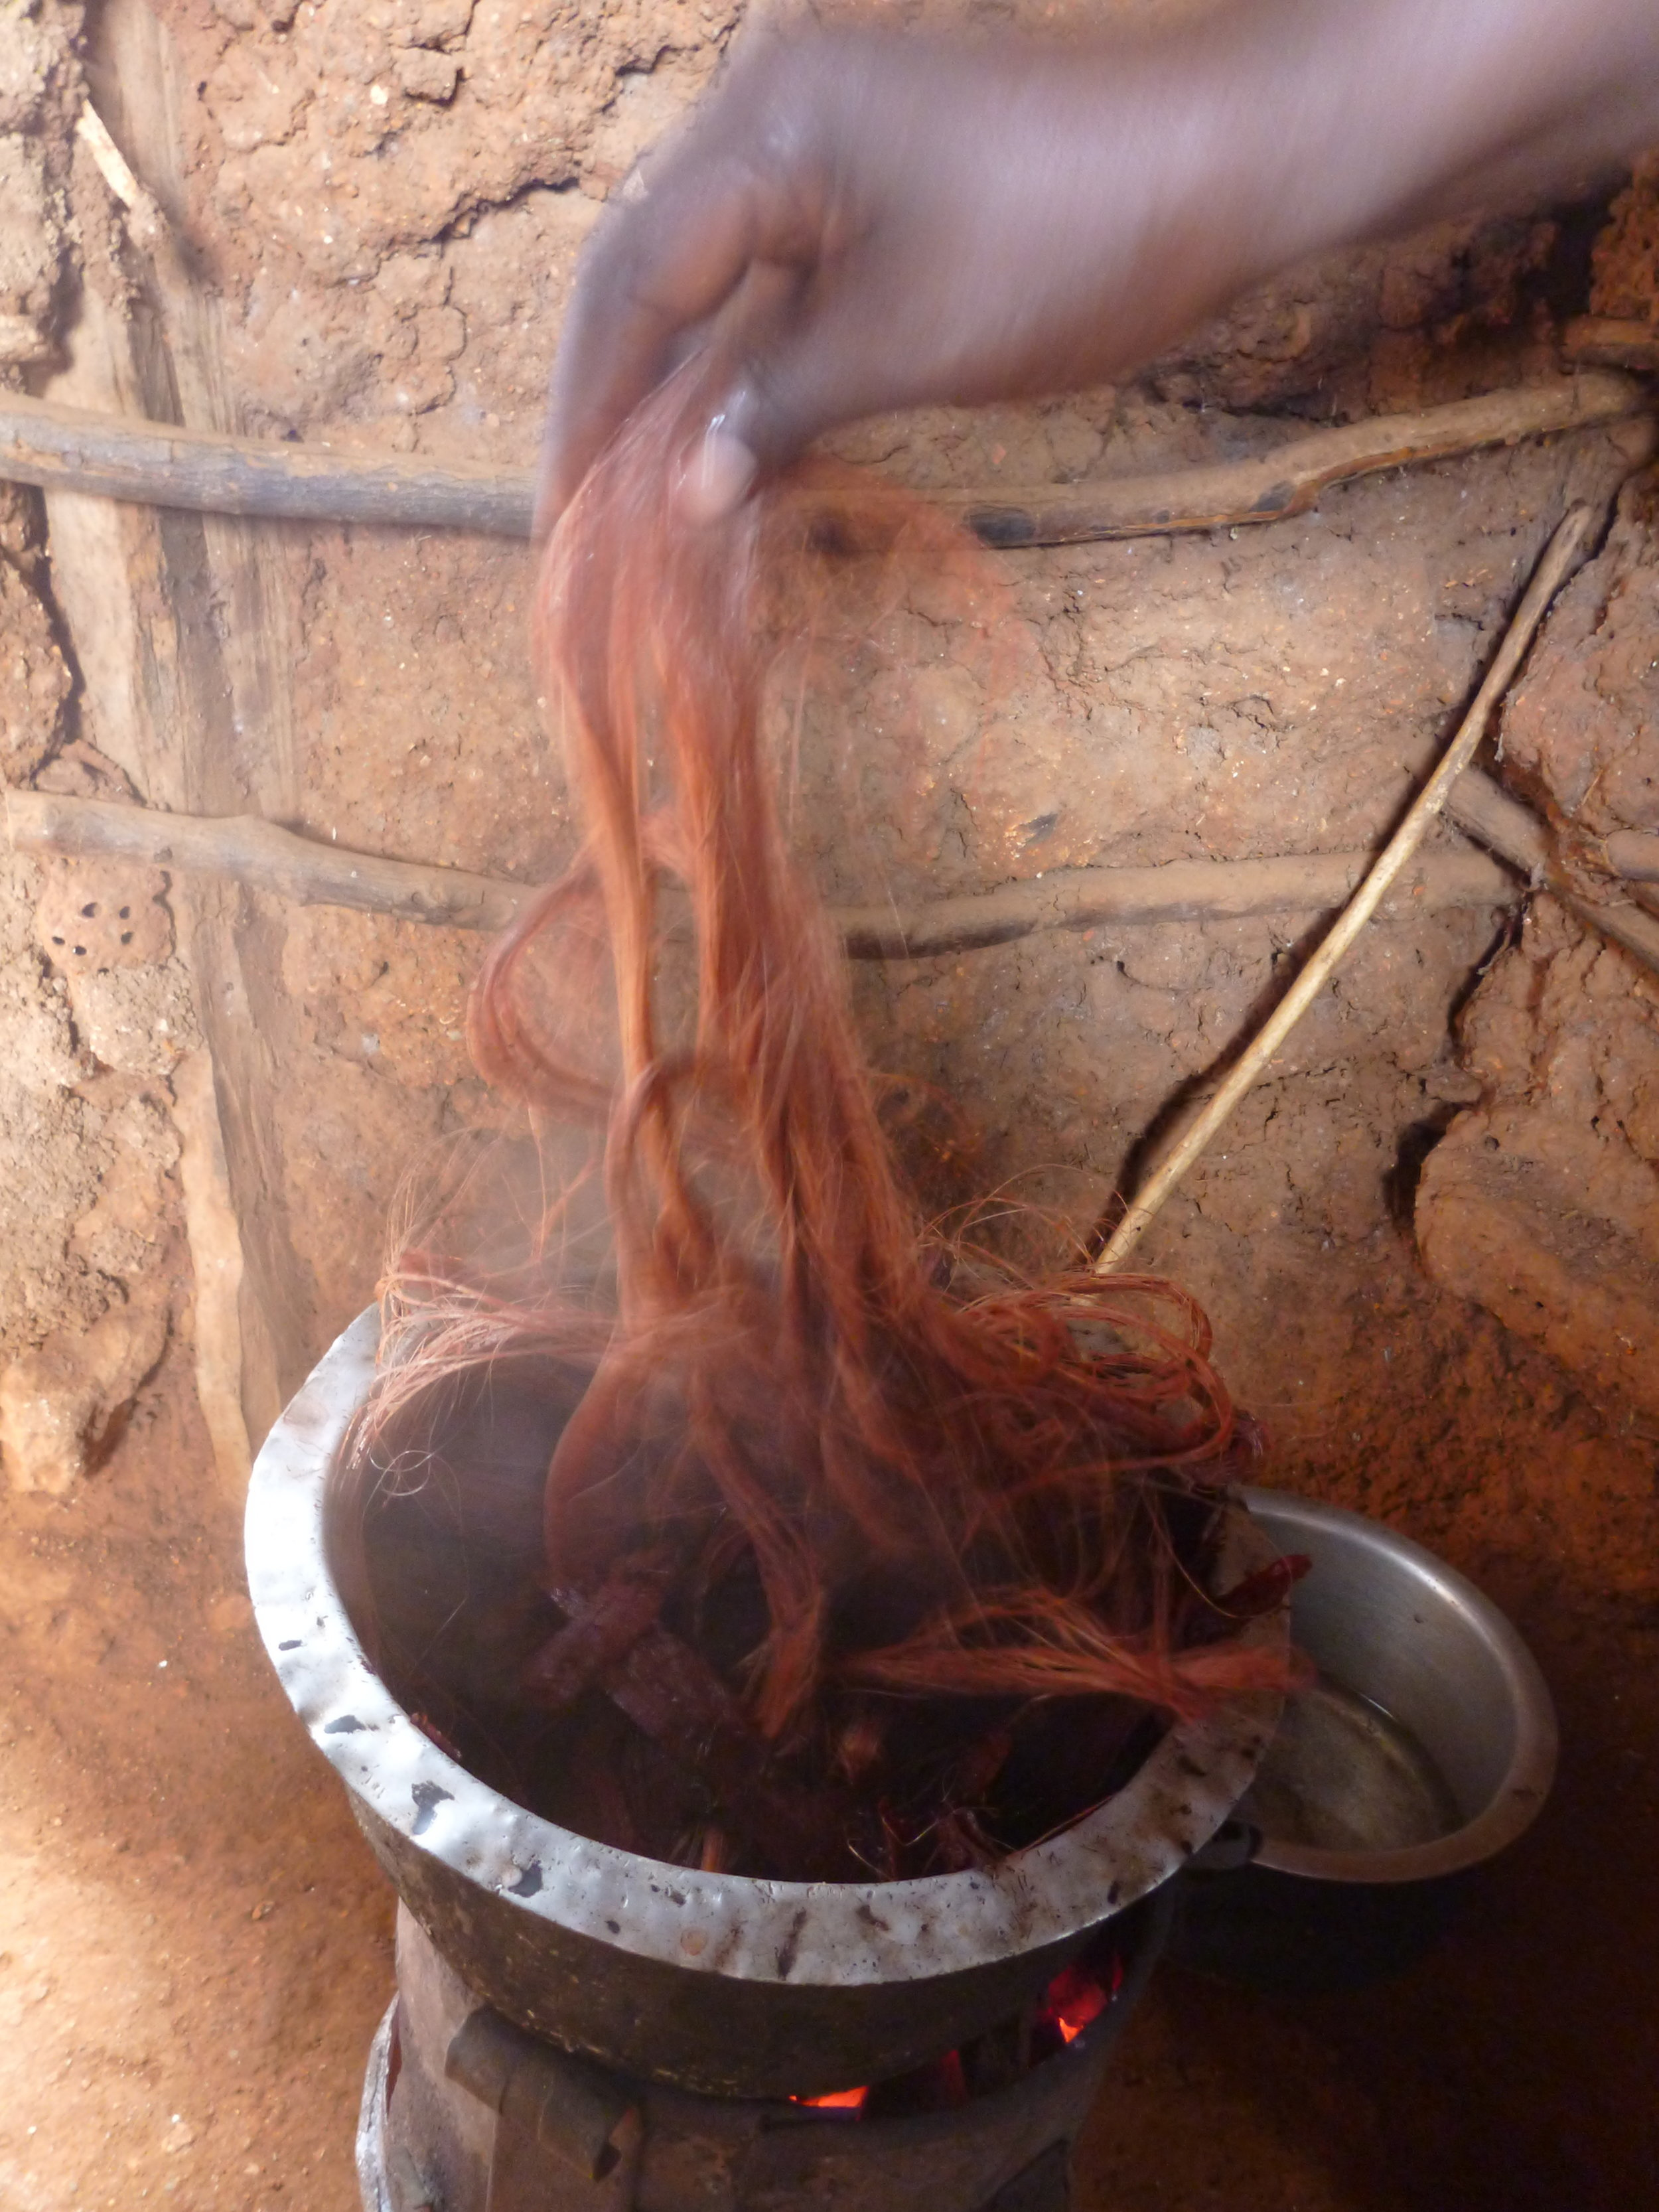 3. Dyeing and drying